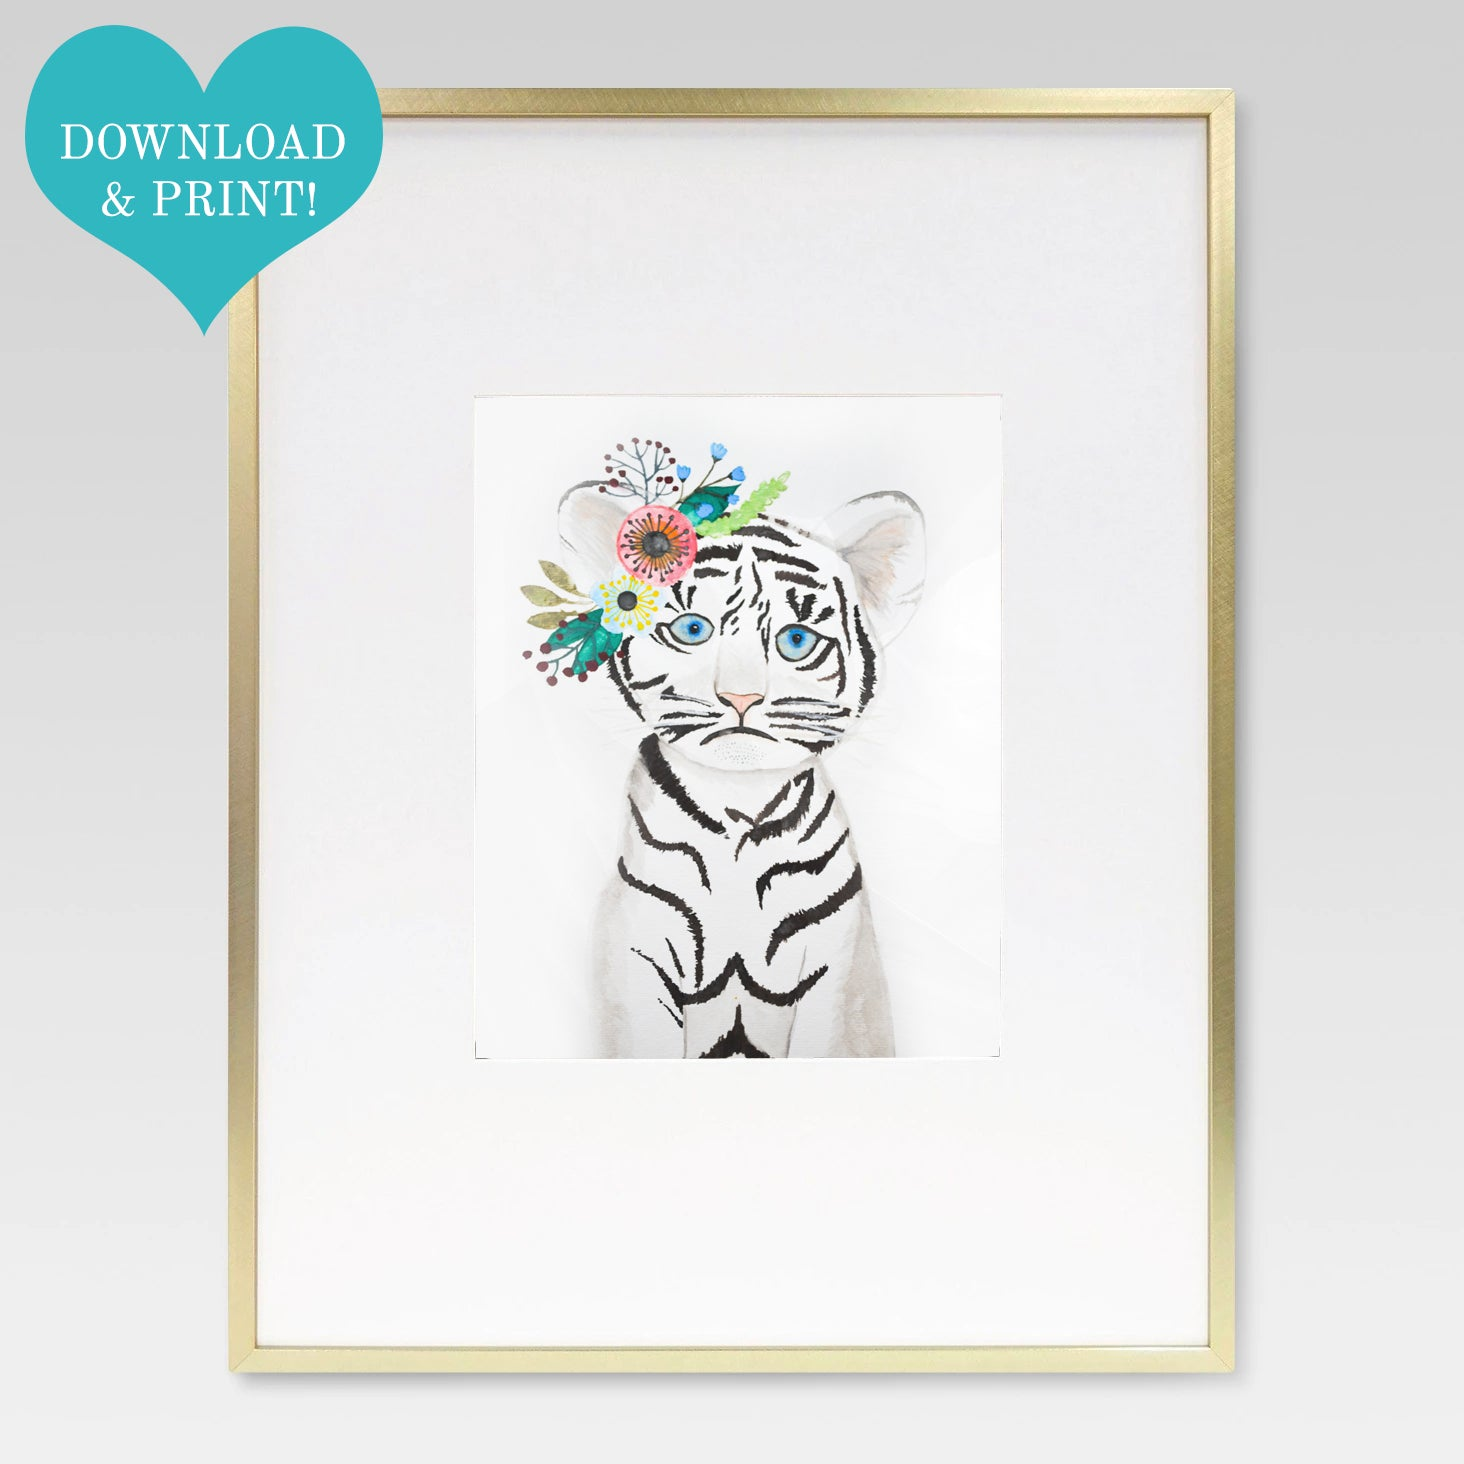 Boho Baby Tiger Cub Watercolor Print - 8 x 10 Downloadable - Lindsay Ann Artistry